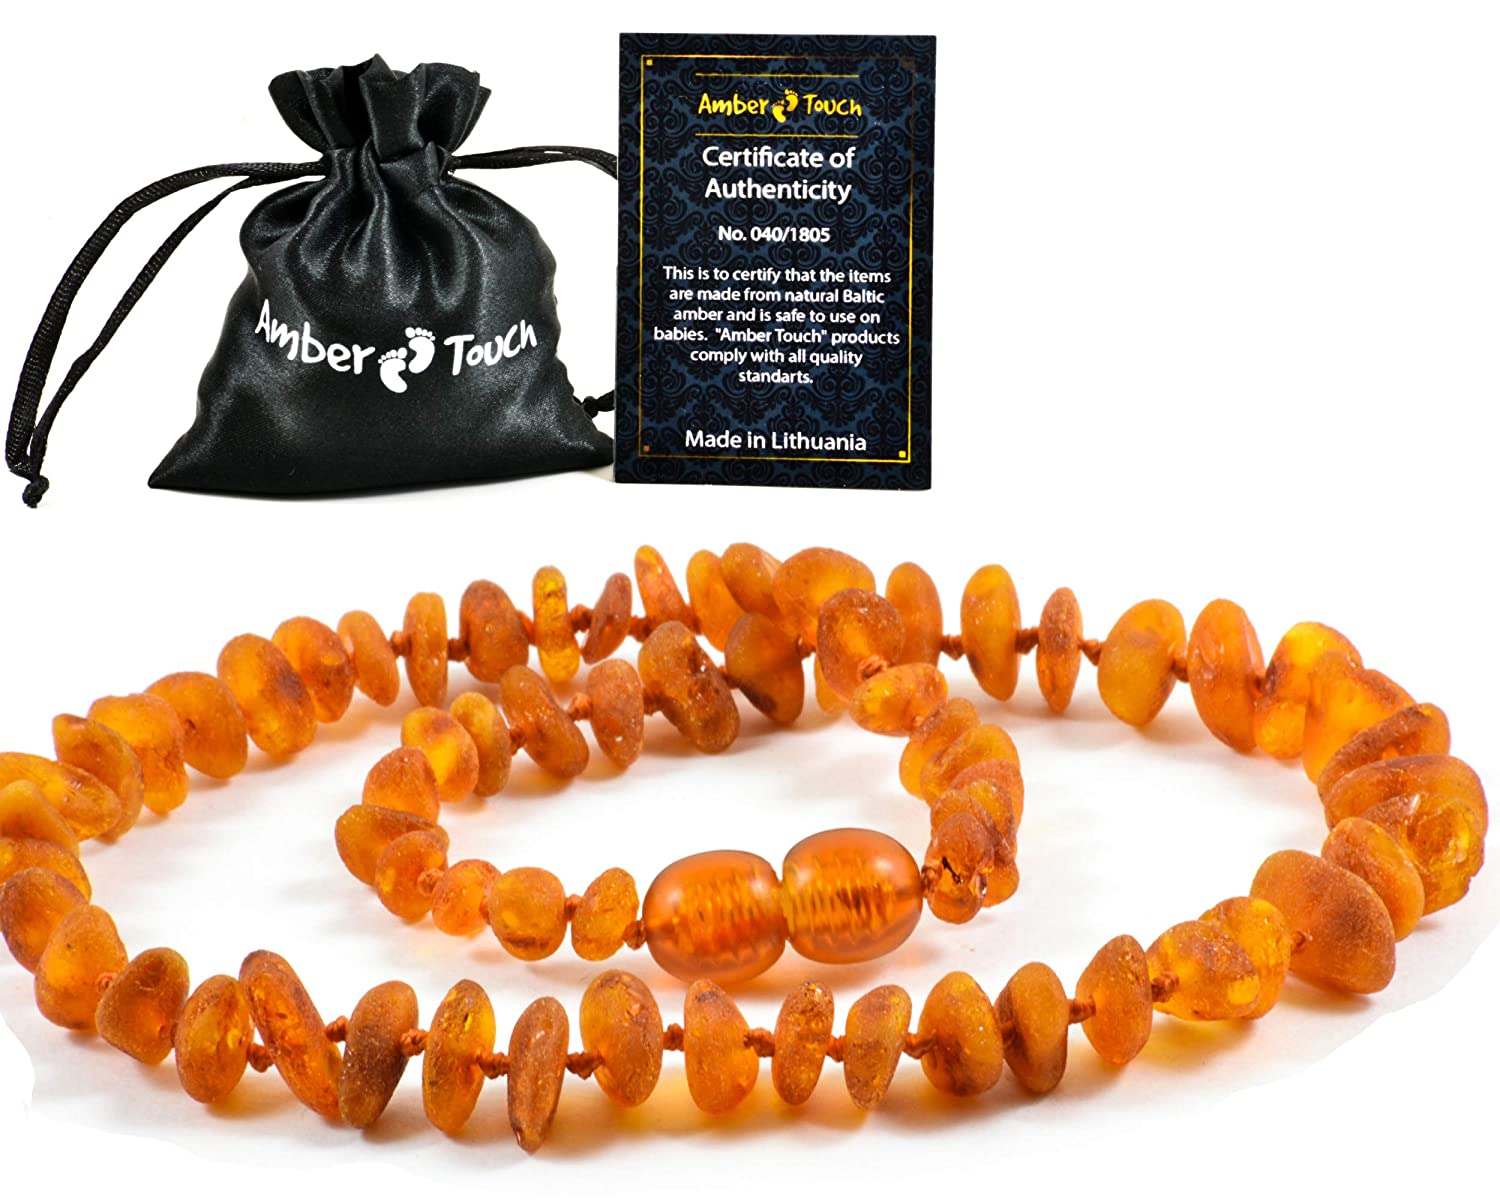 Unisex RAW Baltic Amber Teething Necklace For Babies Drooling /& Teething Pain Reduce Properties UNPOLISHED Natural Amber-Touch - Anti Flammatory